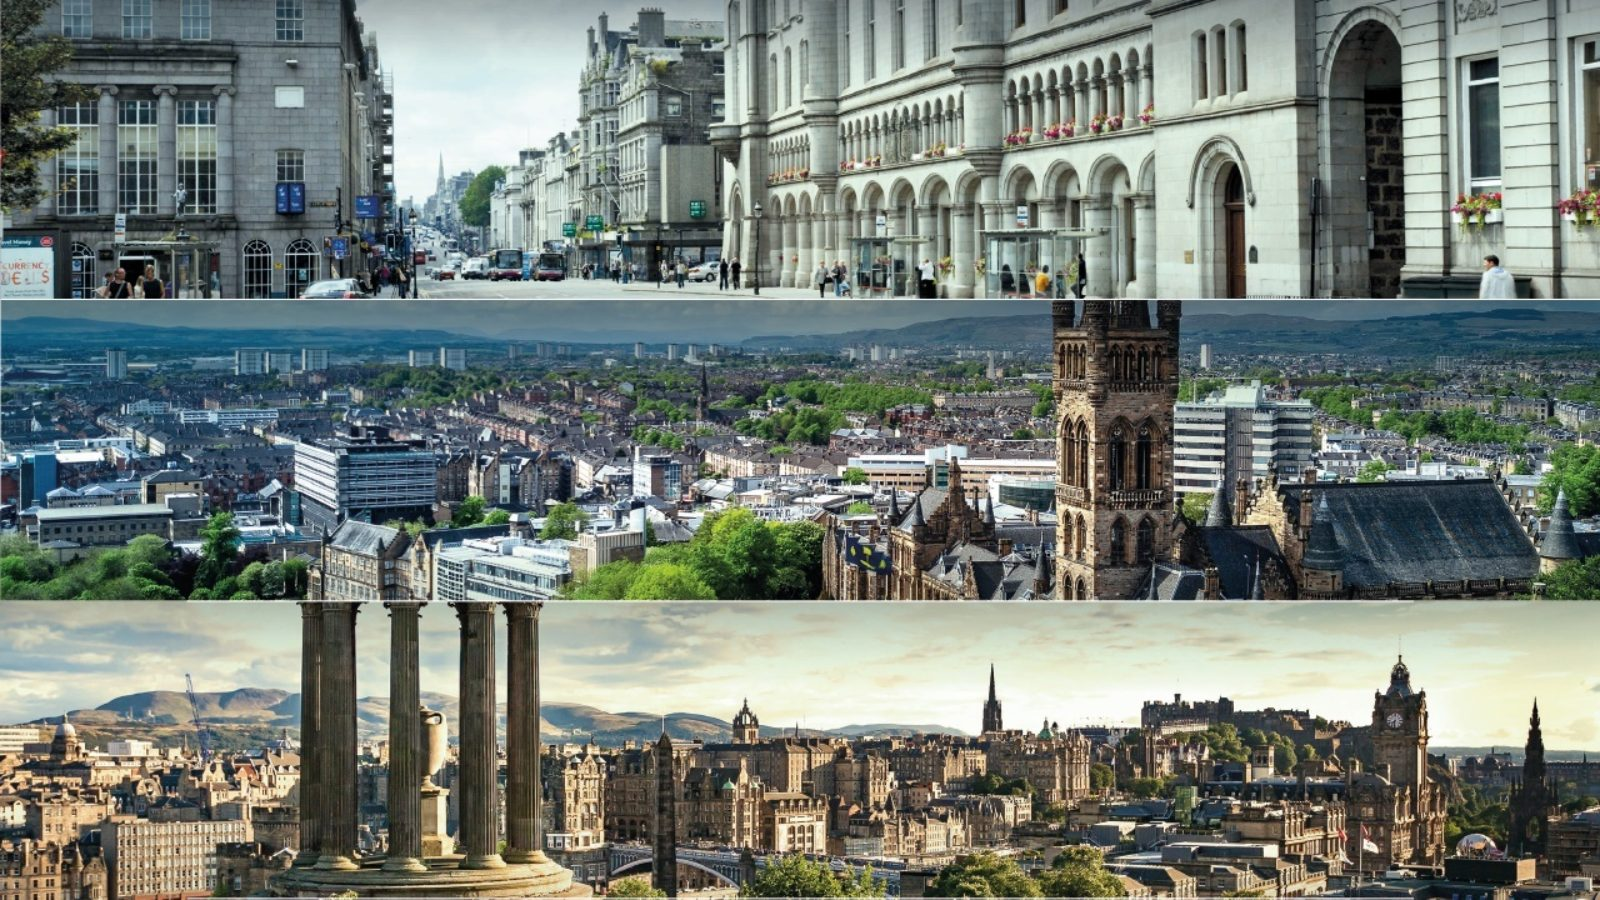 Scotland's largest cities united on the route to economic recovery